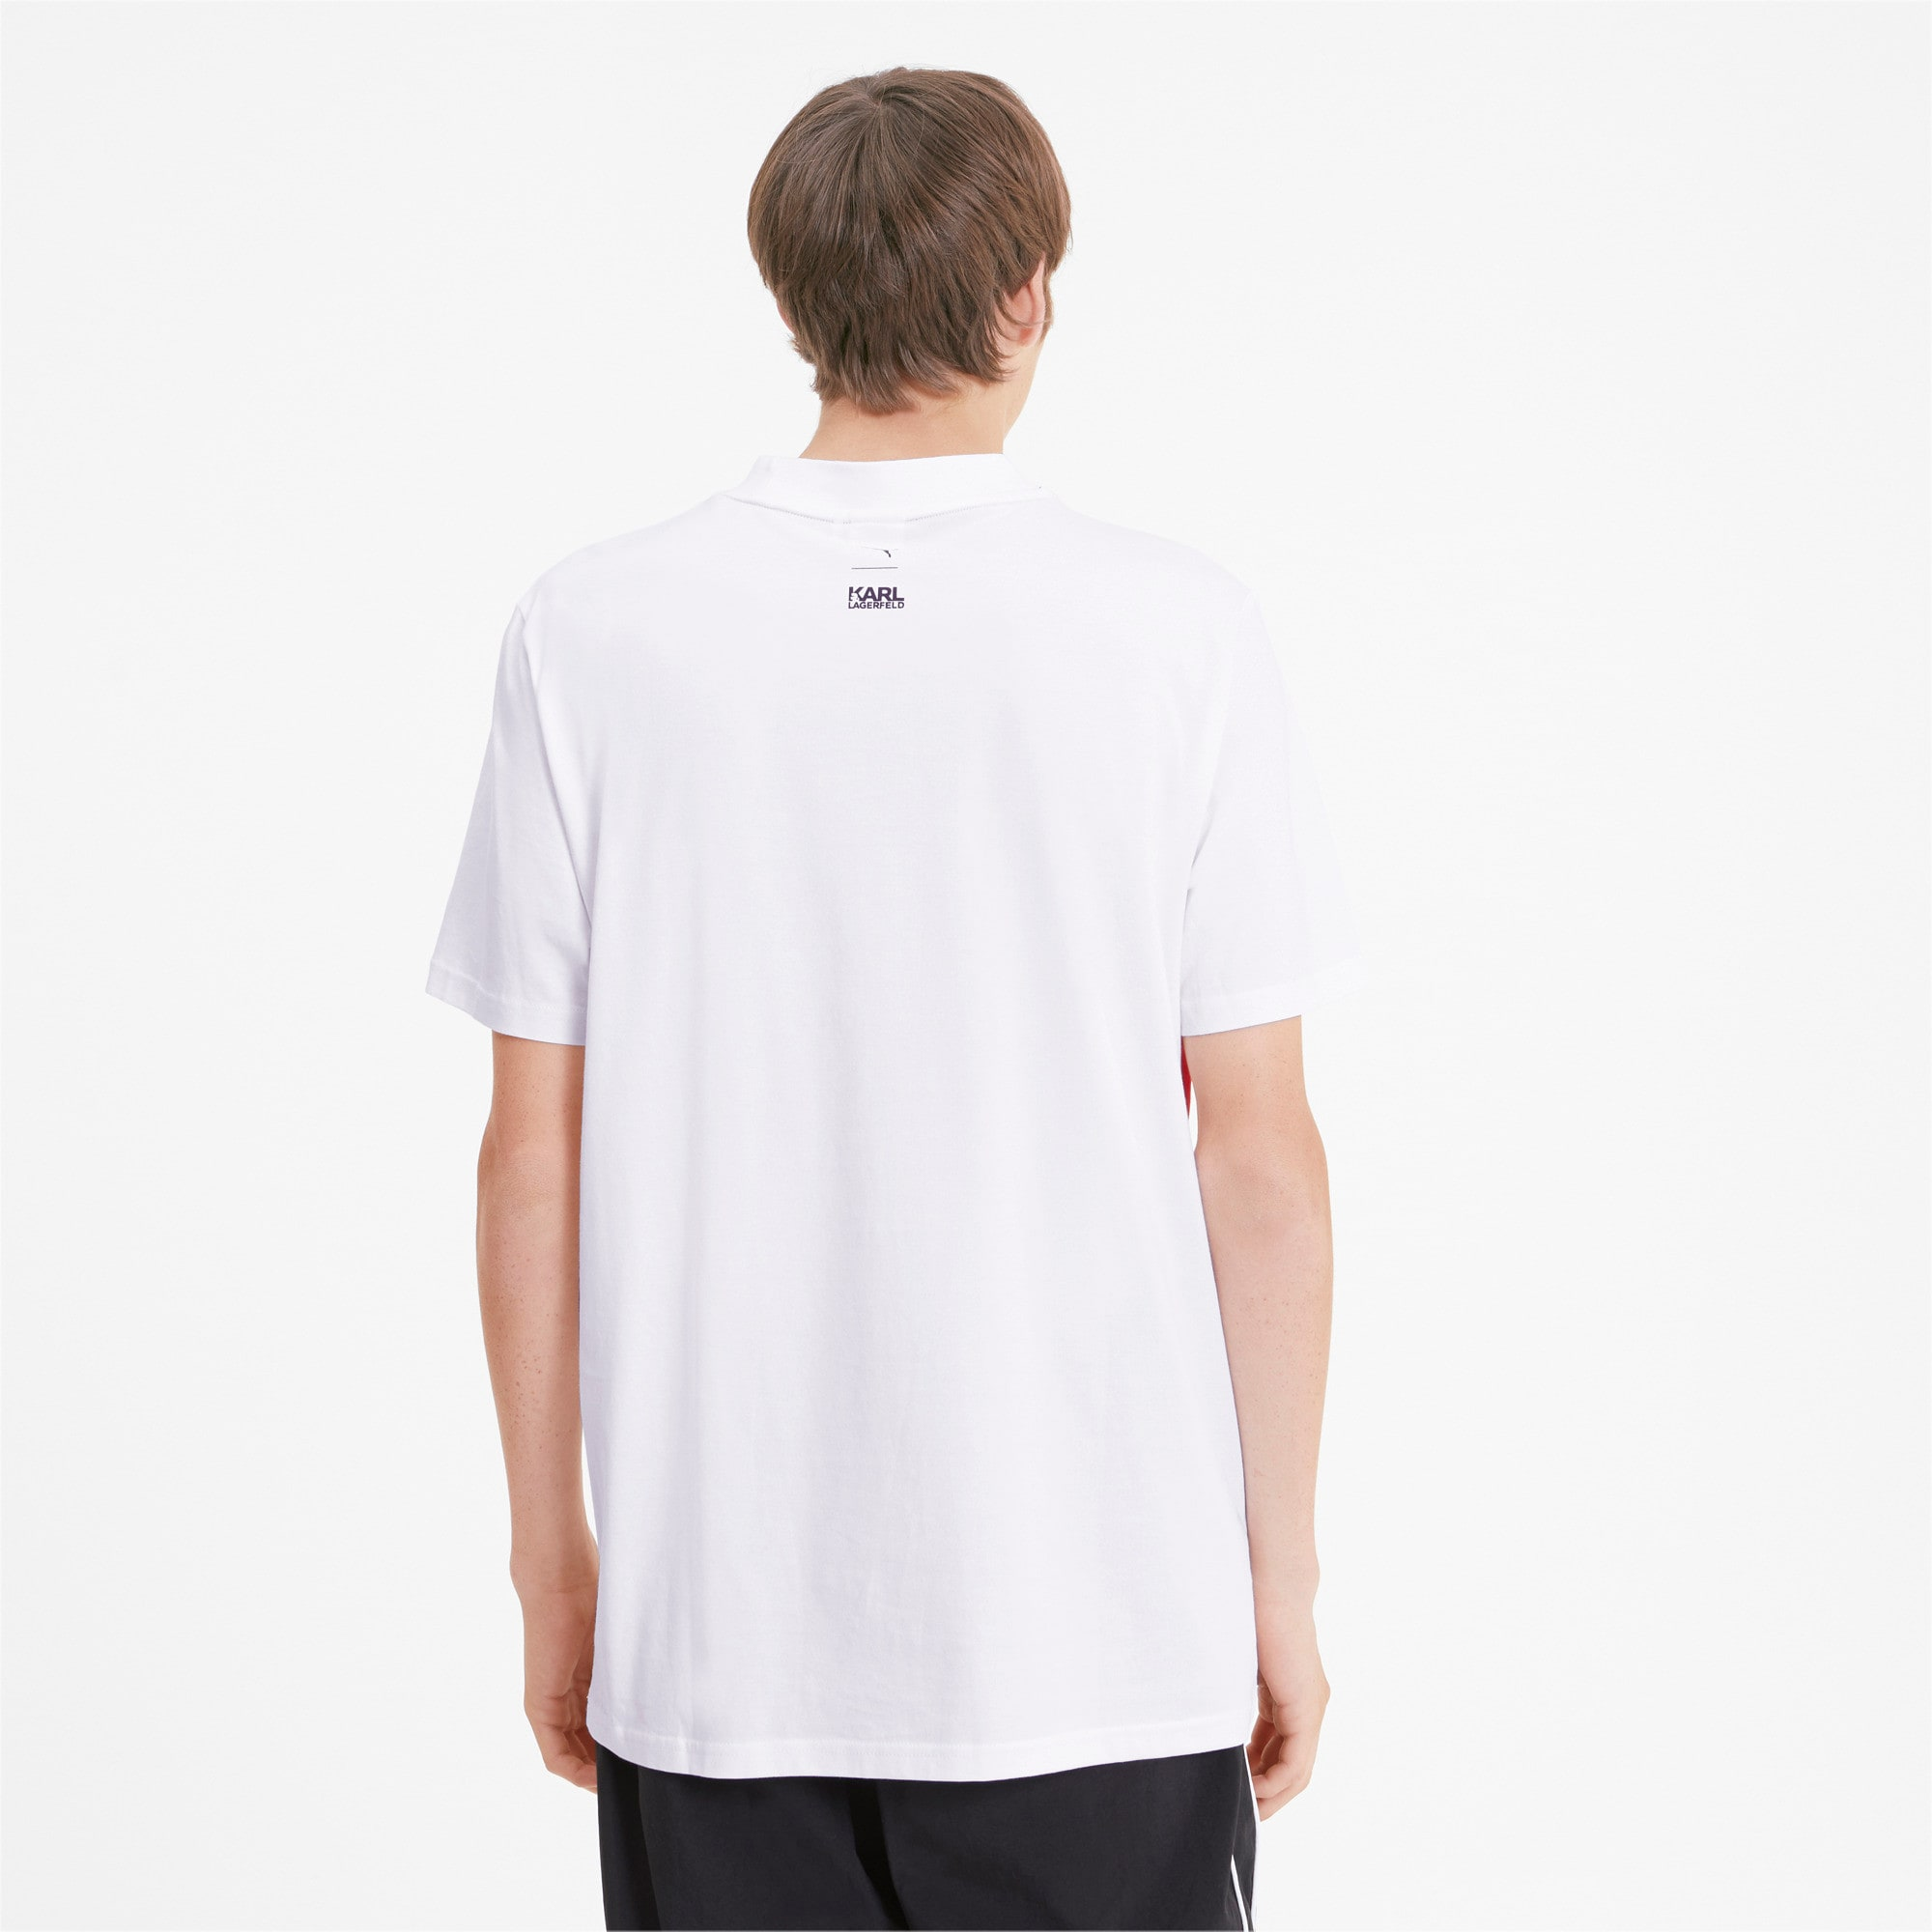 Thumbnail 2 of PUMA x KARL LAGERFELD Herren T-Shirt, Puma White, medium